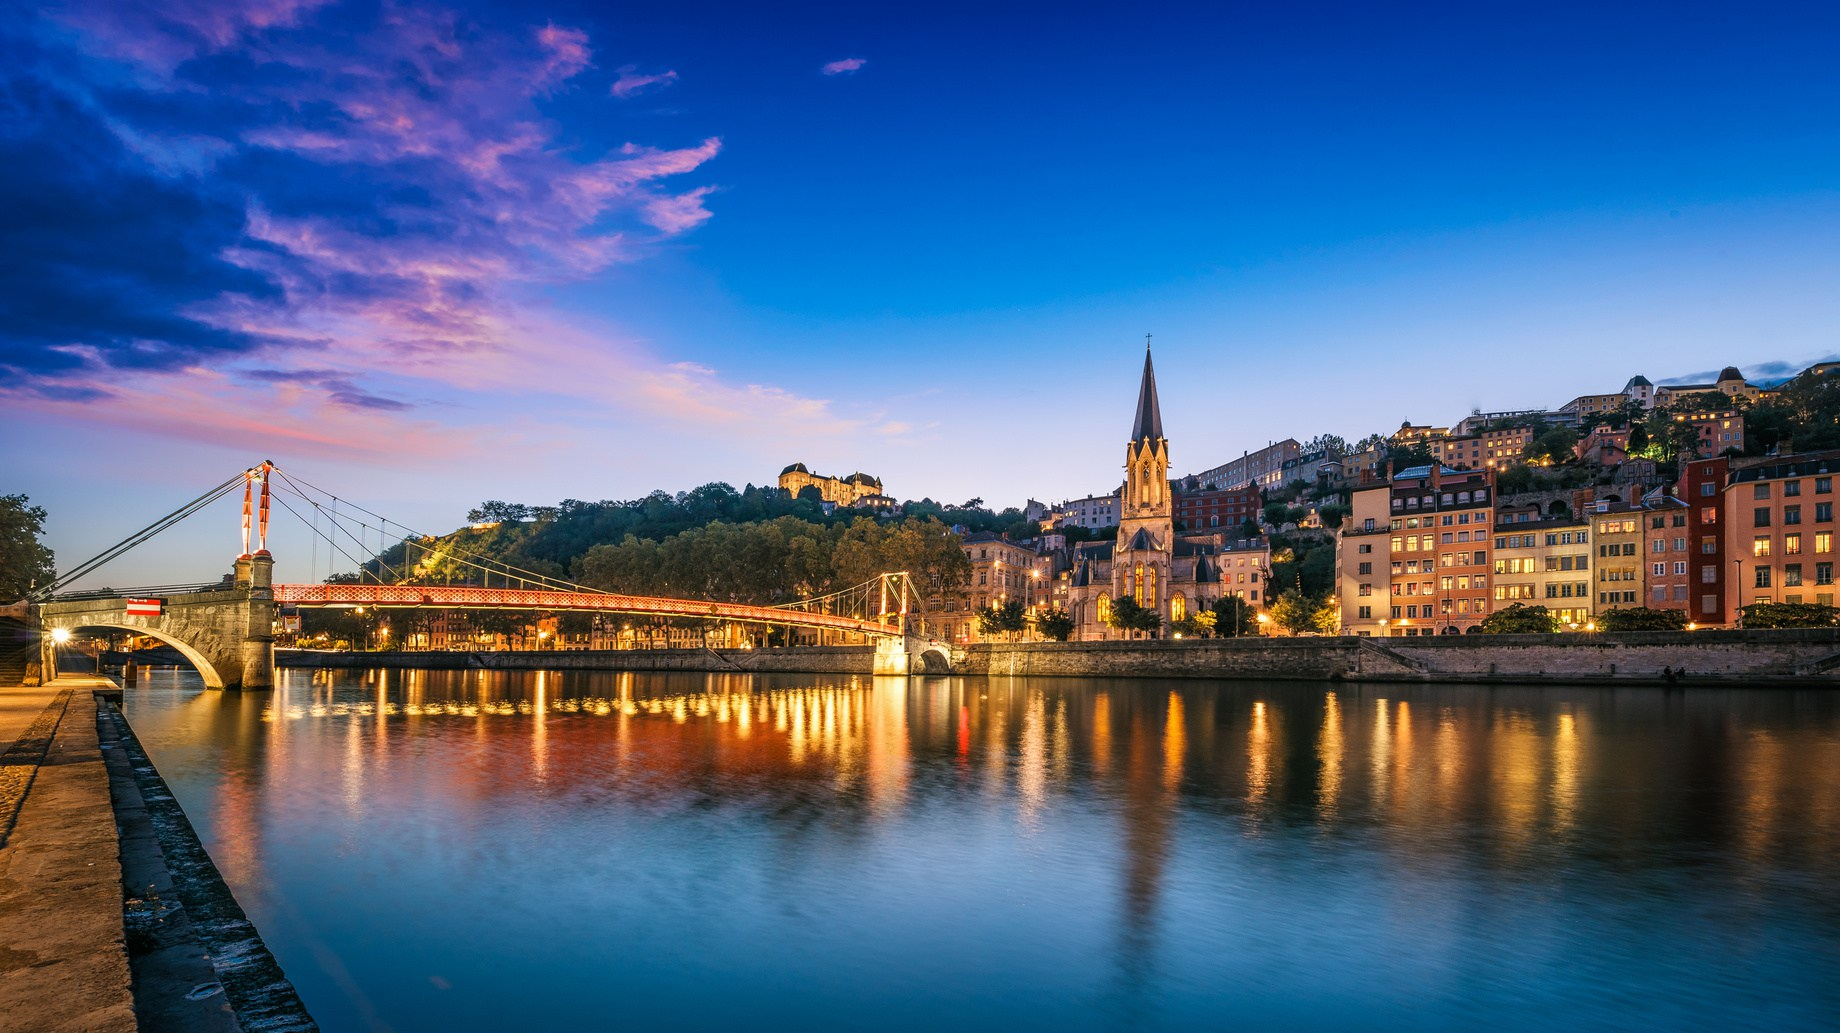 video-360-voyage-lyon-france-1840x1033.jpg